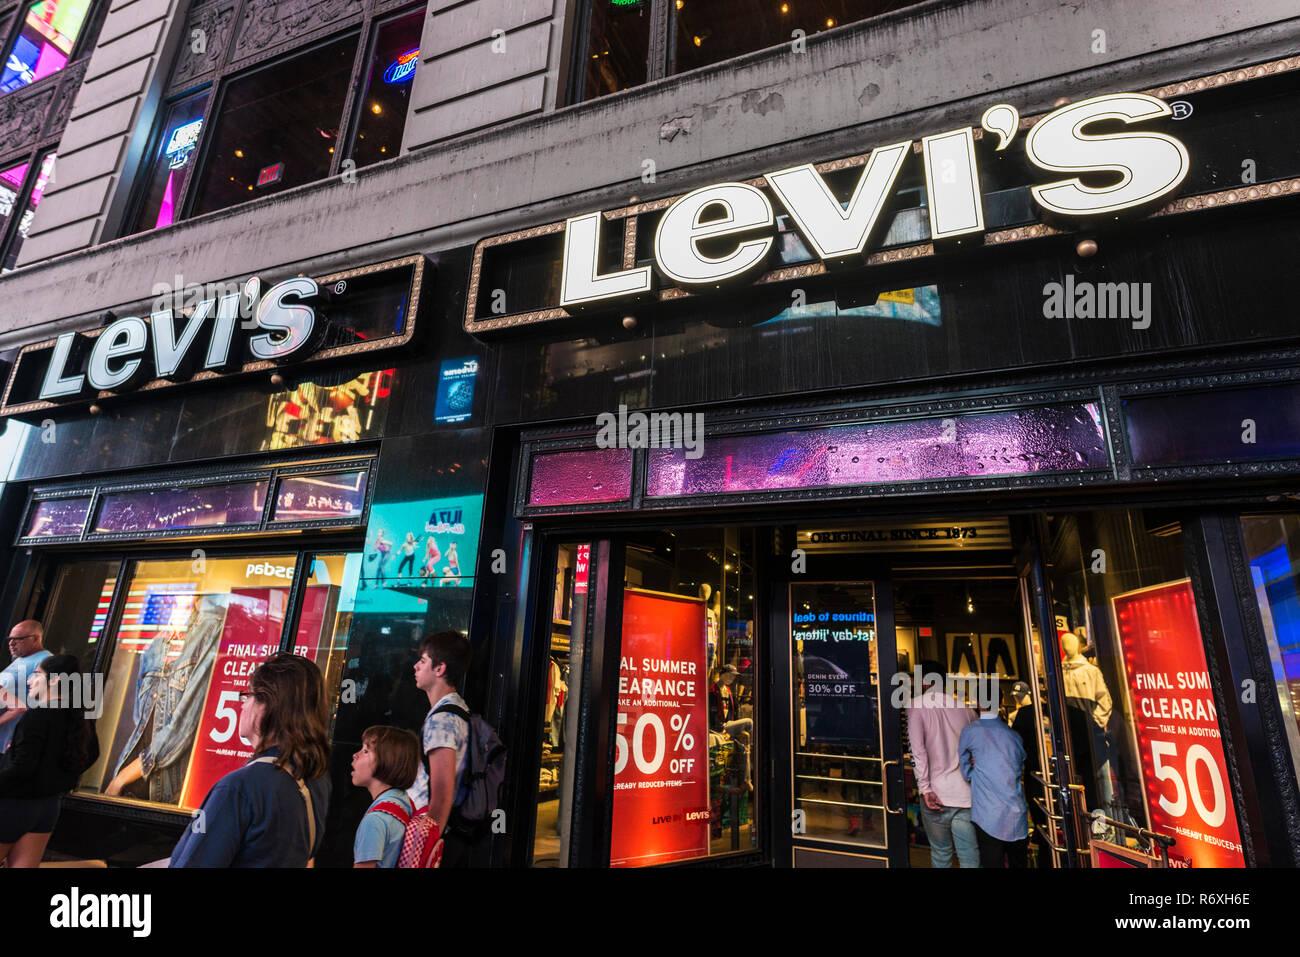 39263d18 Levi Store Display Stock Photos & Levi Store Display Stock Images ...